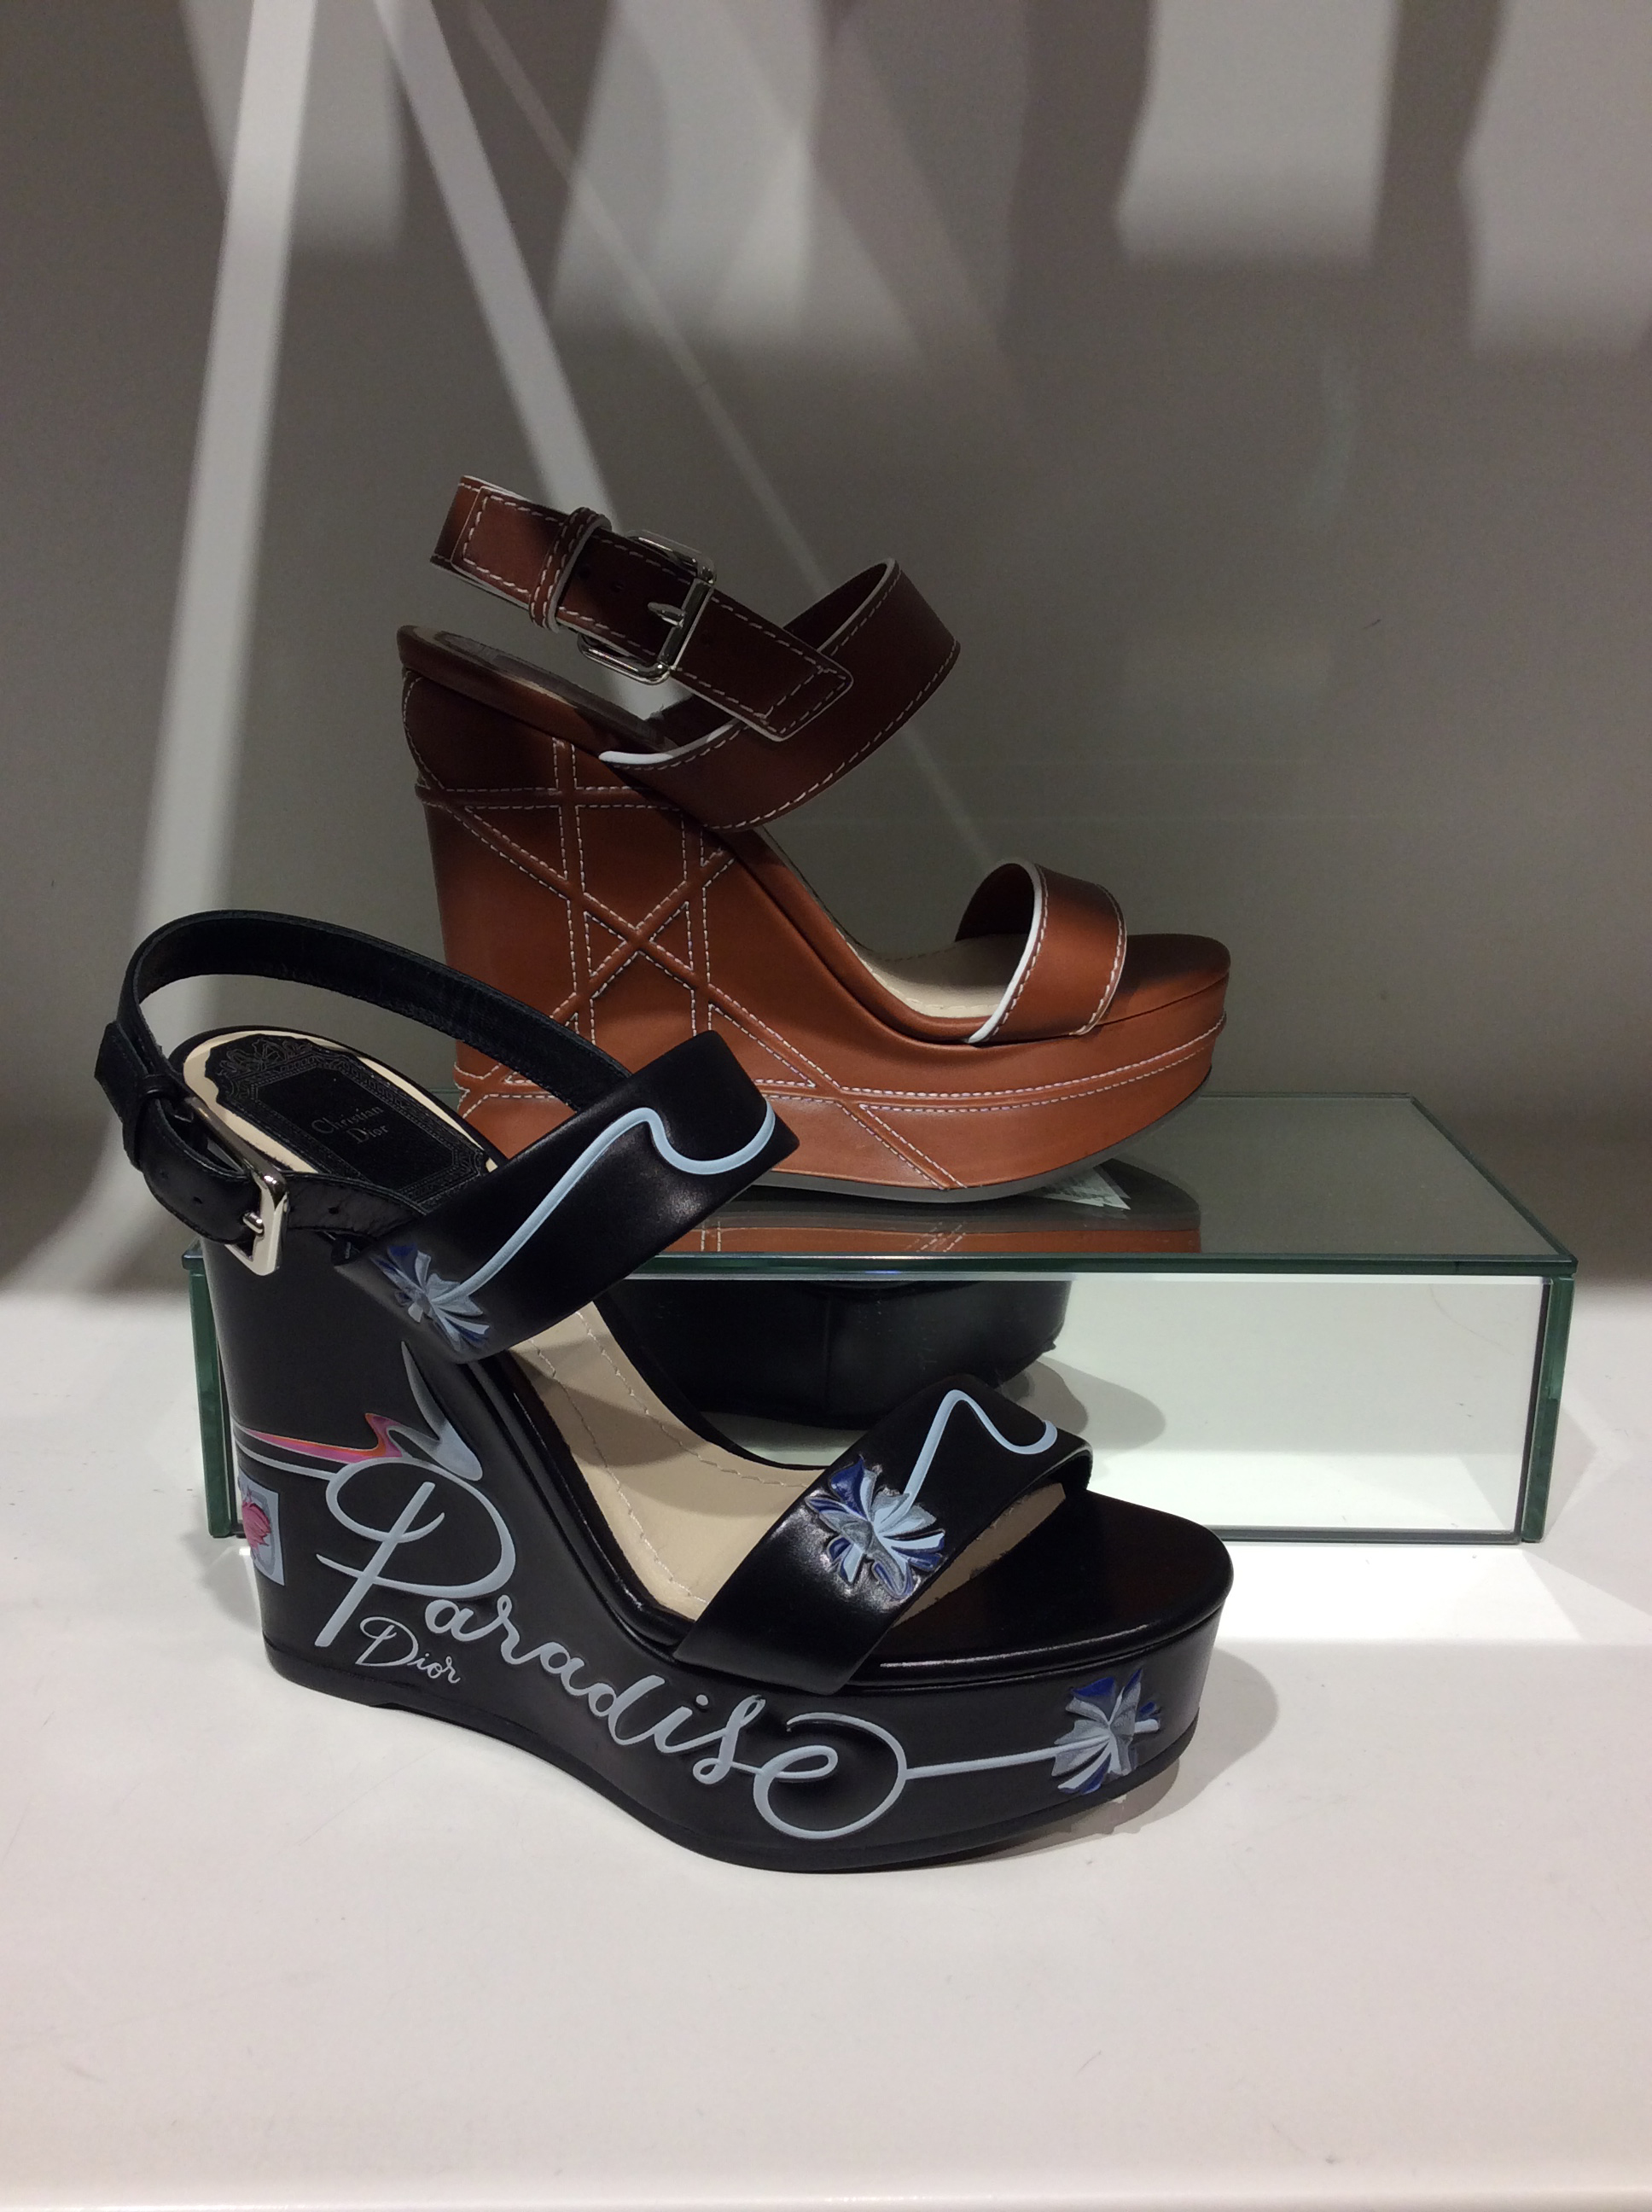 Dior-Shoes-Bloomingdales-03